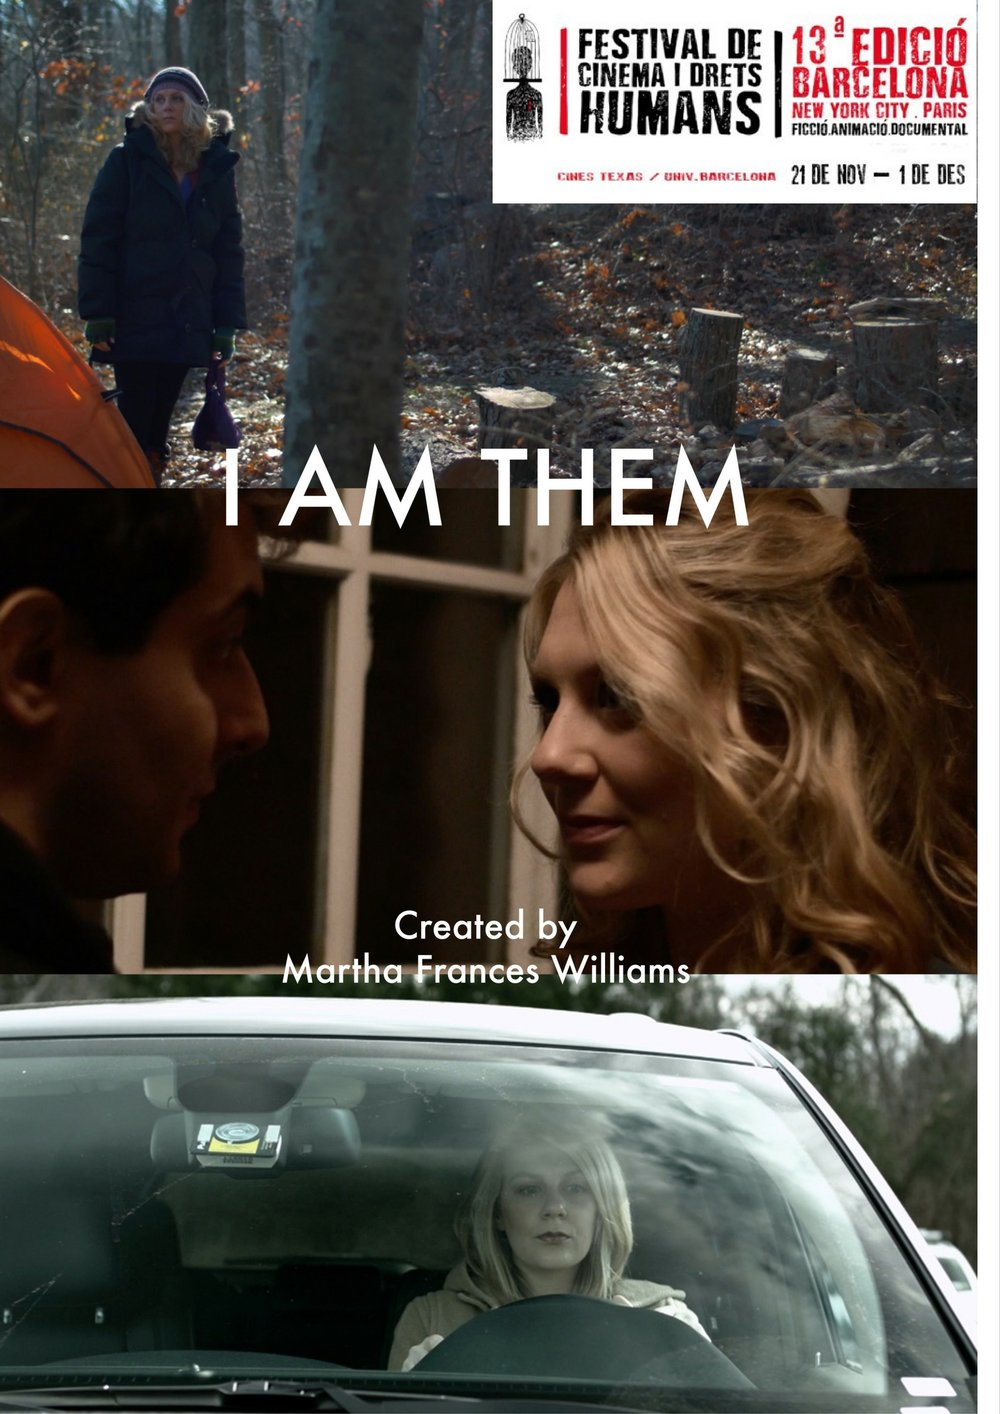 I am THEM is an official selection of the  Human Rights Film Festival Barcelona  with a screening in Freeport NY on December 8th!